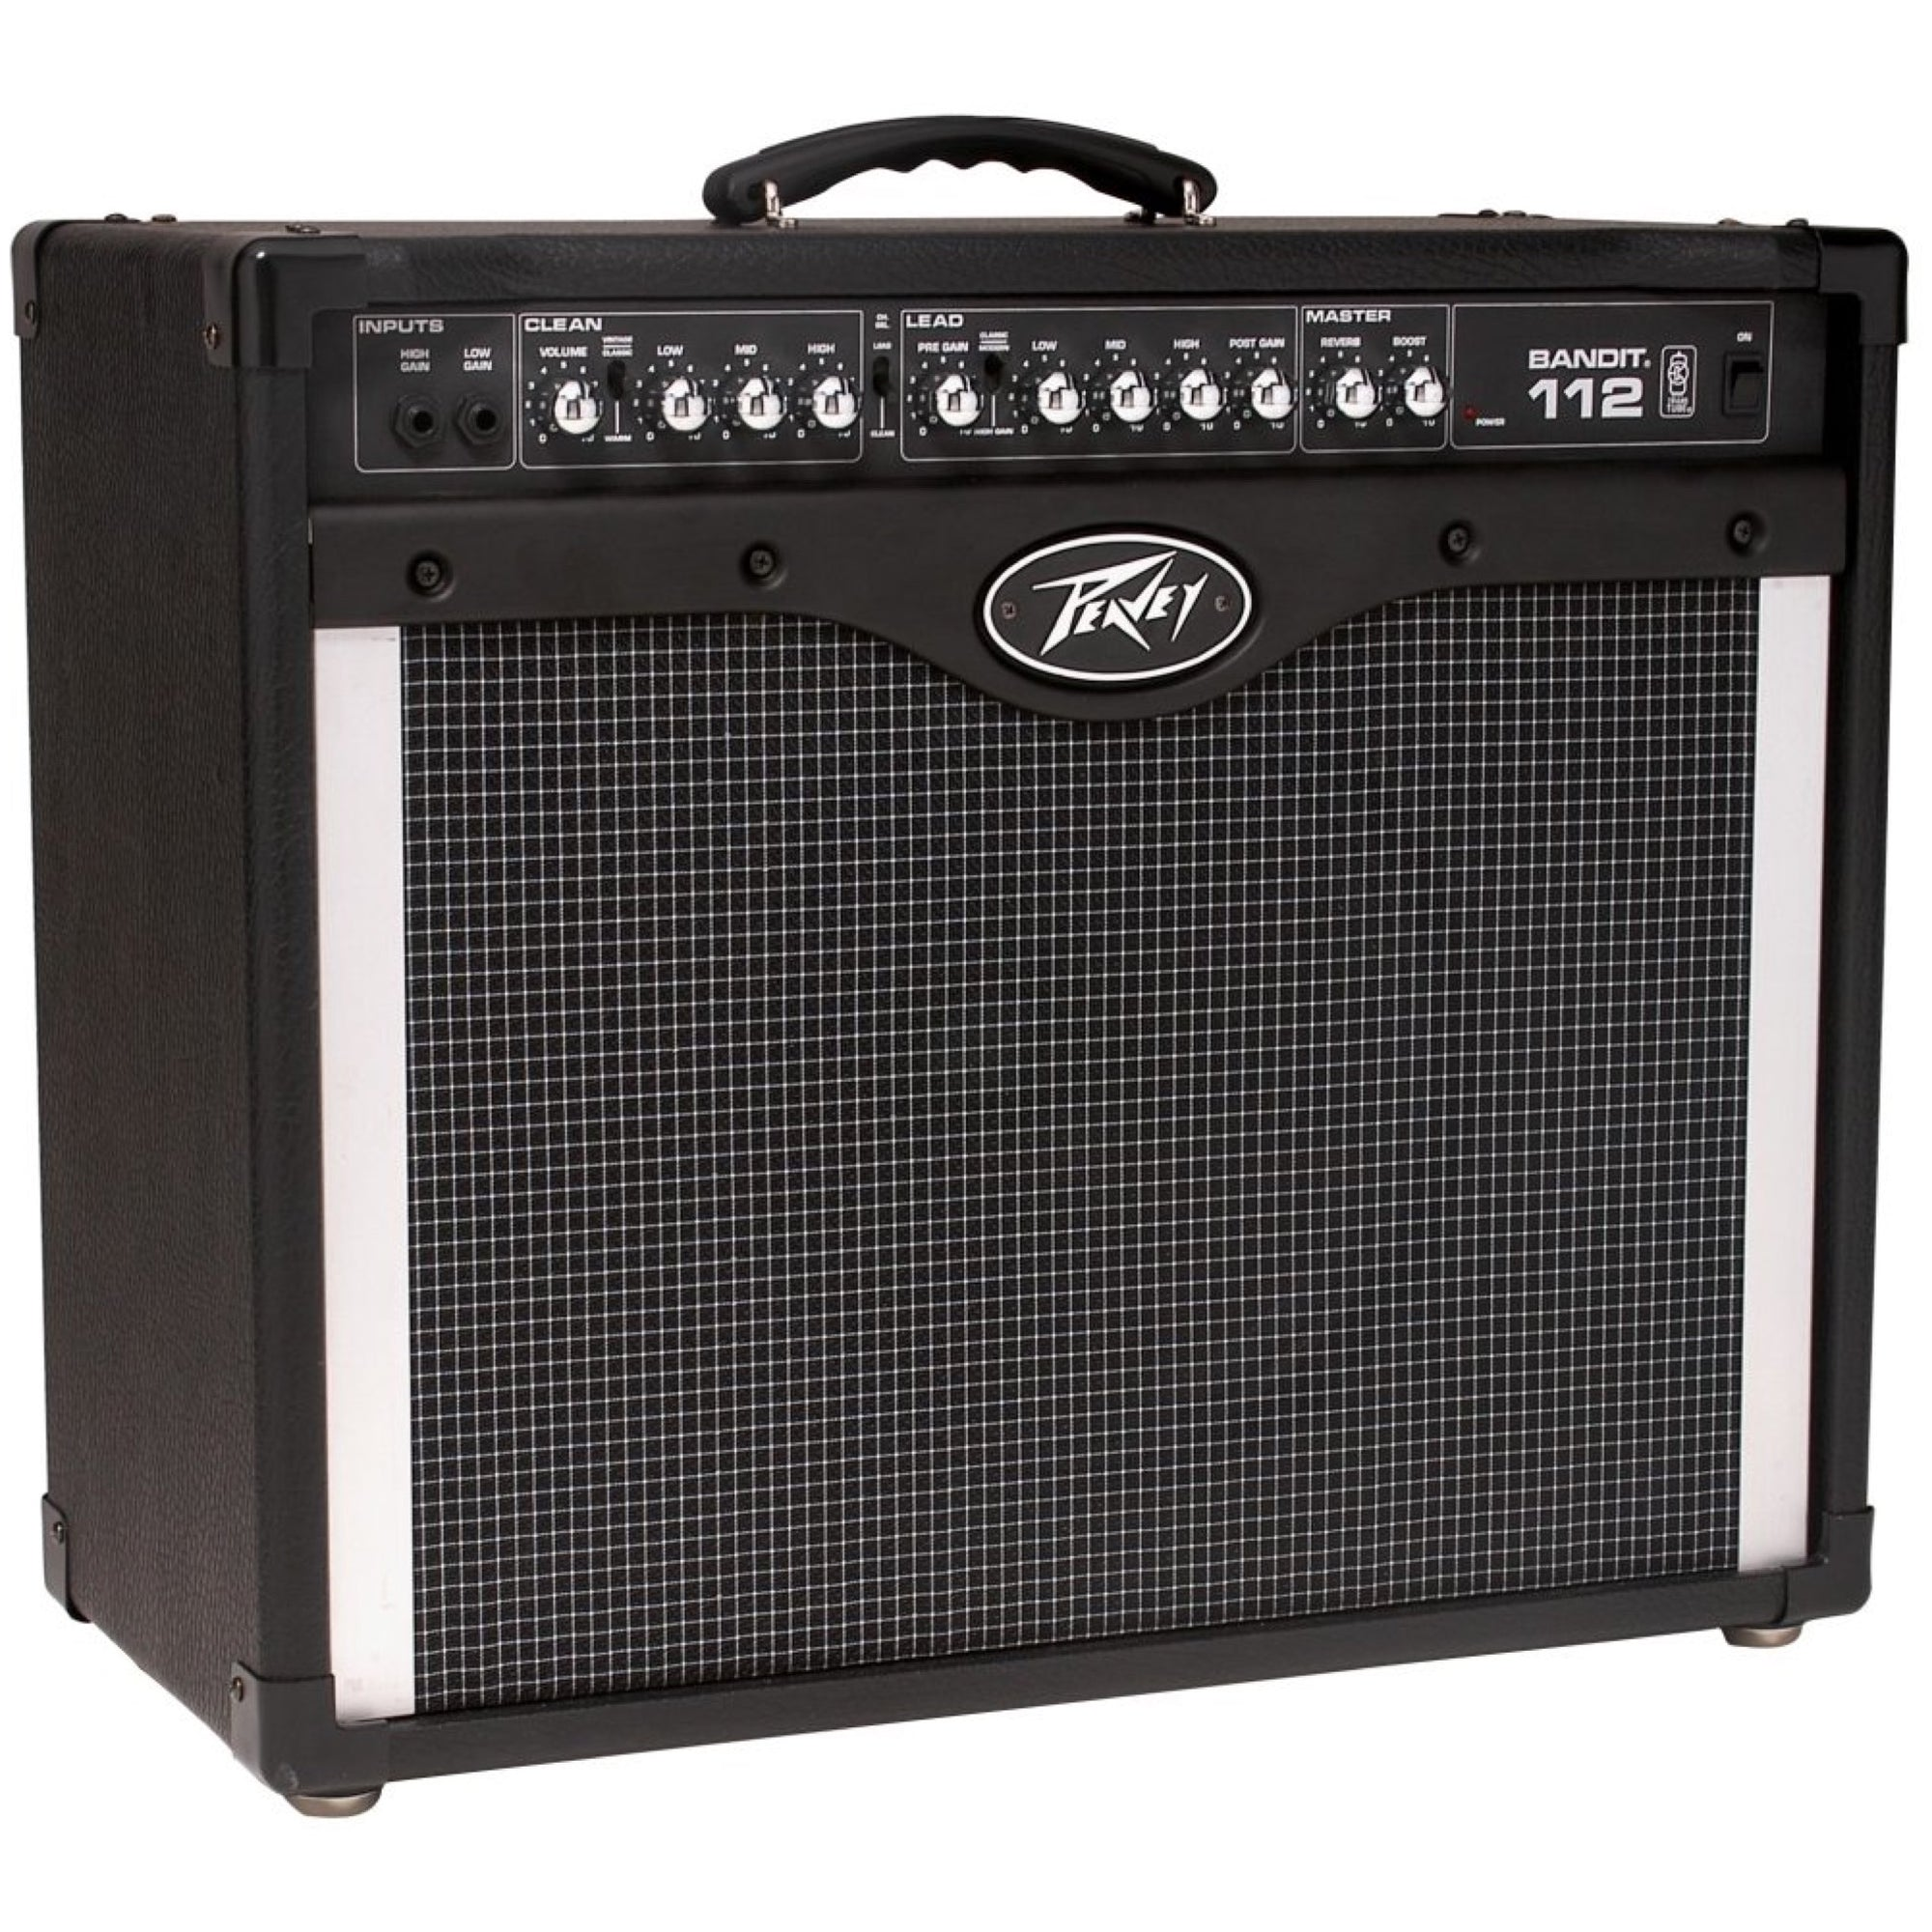 Peavey Bandit 112 TransTube Guitar Combo Amplifier (80 Watts, 1x12 Inch)